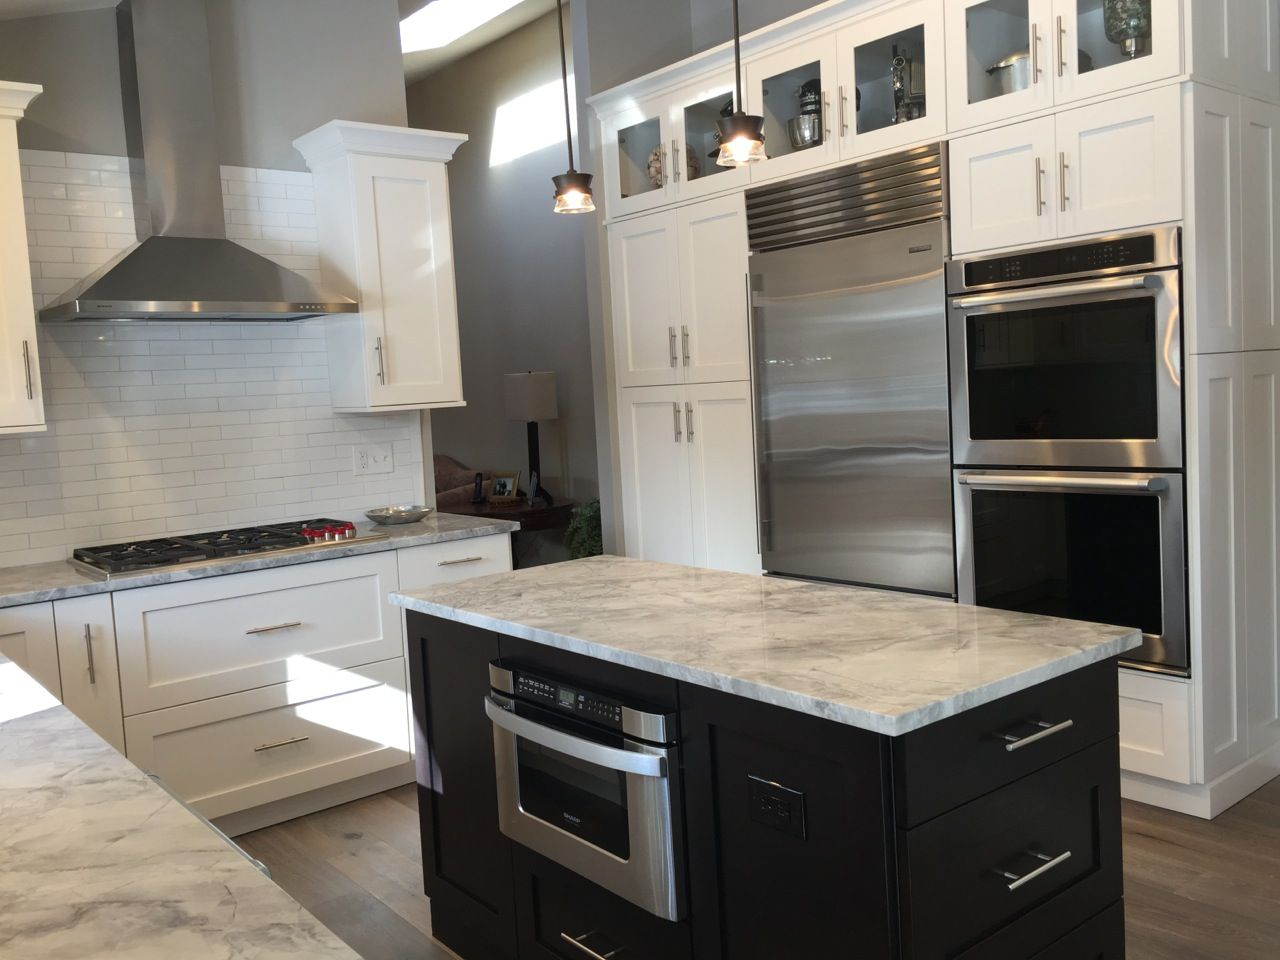 Kitchen West Long Branch Nj St Martin Cabinets In Simply White For The Perimeter And Smoke Grey For The Island Http Kitchen Design Kitchen Simply White